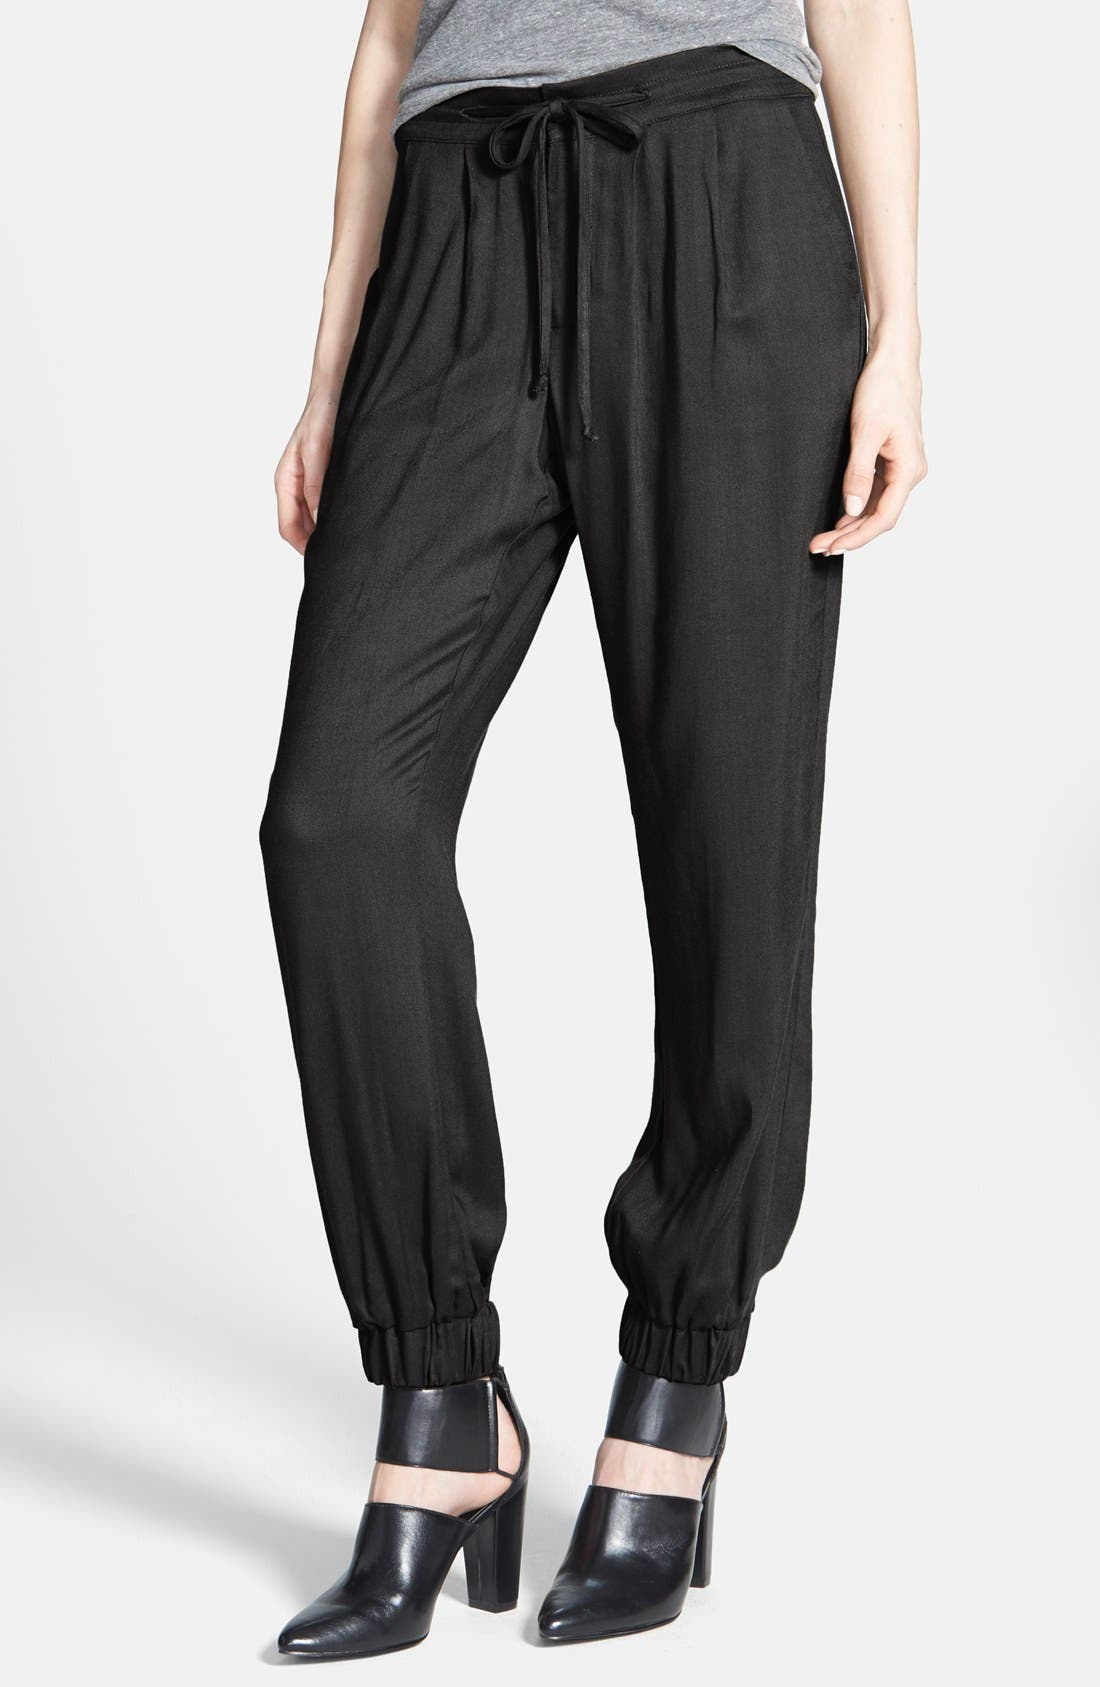 Alternate Image 1 Selected - Lily White Drawstring Soft Pants (Juniors) (Online Only)